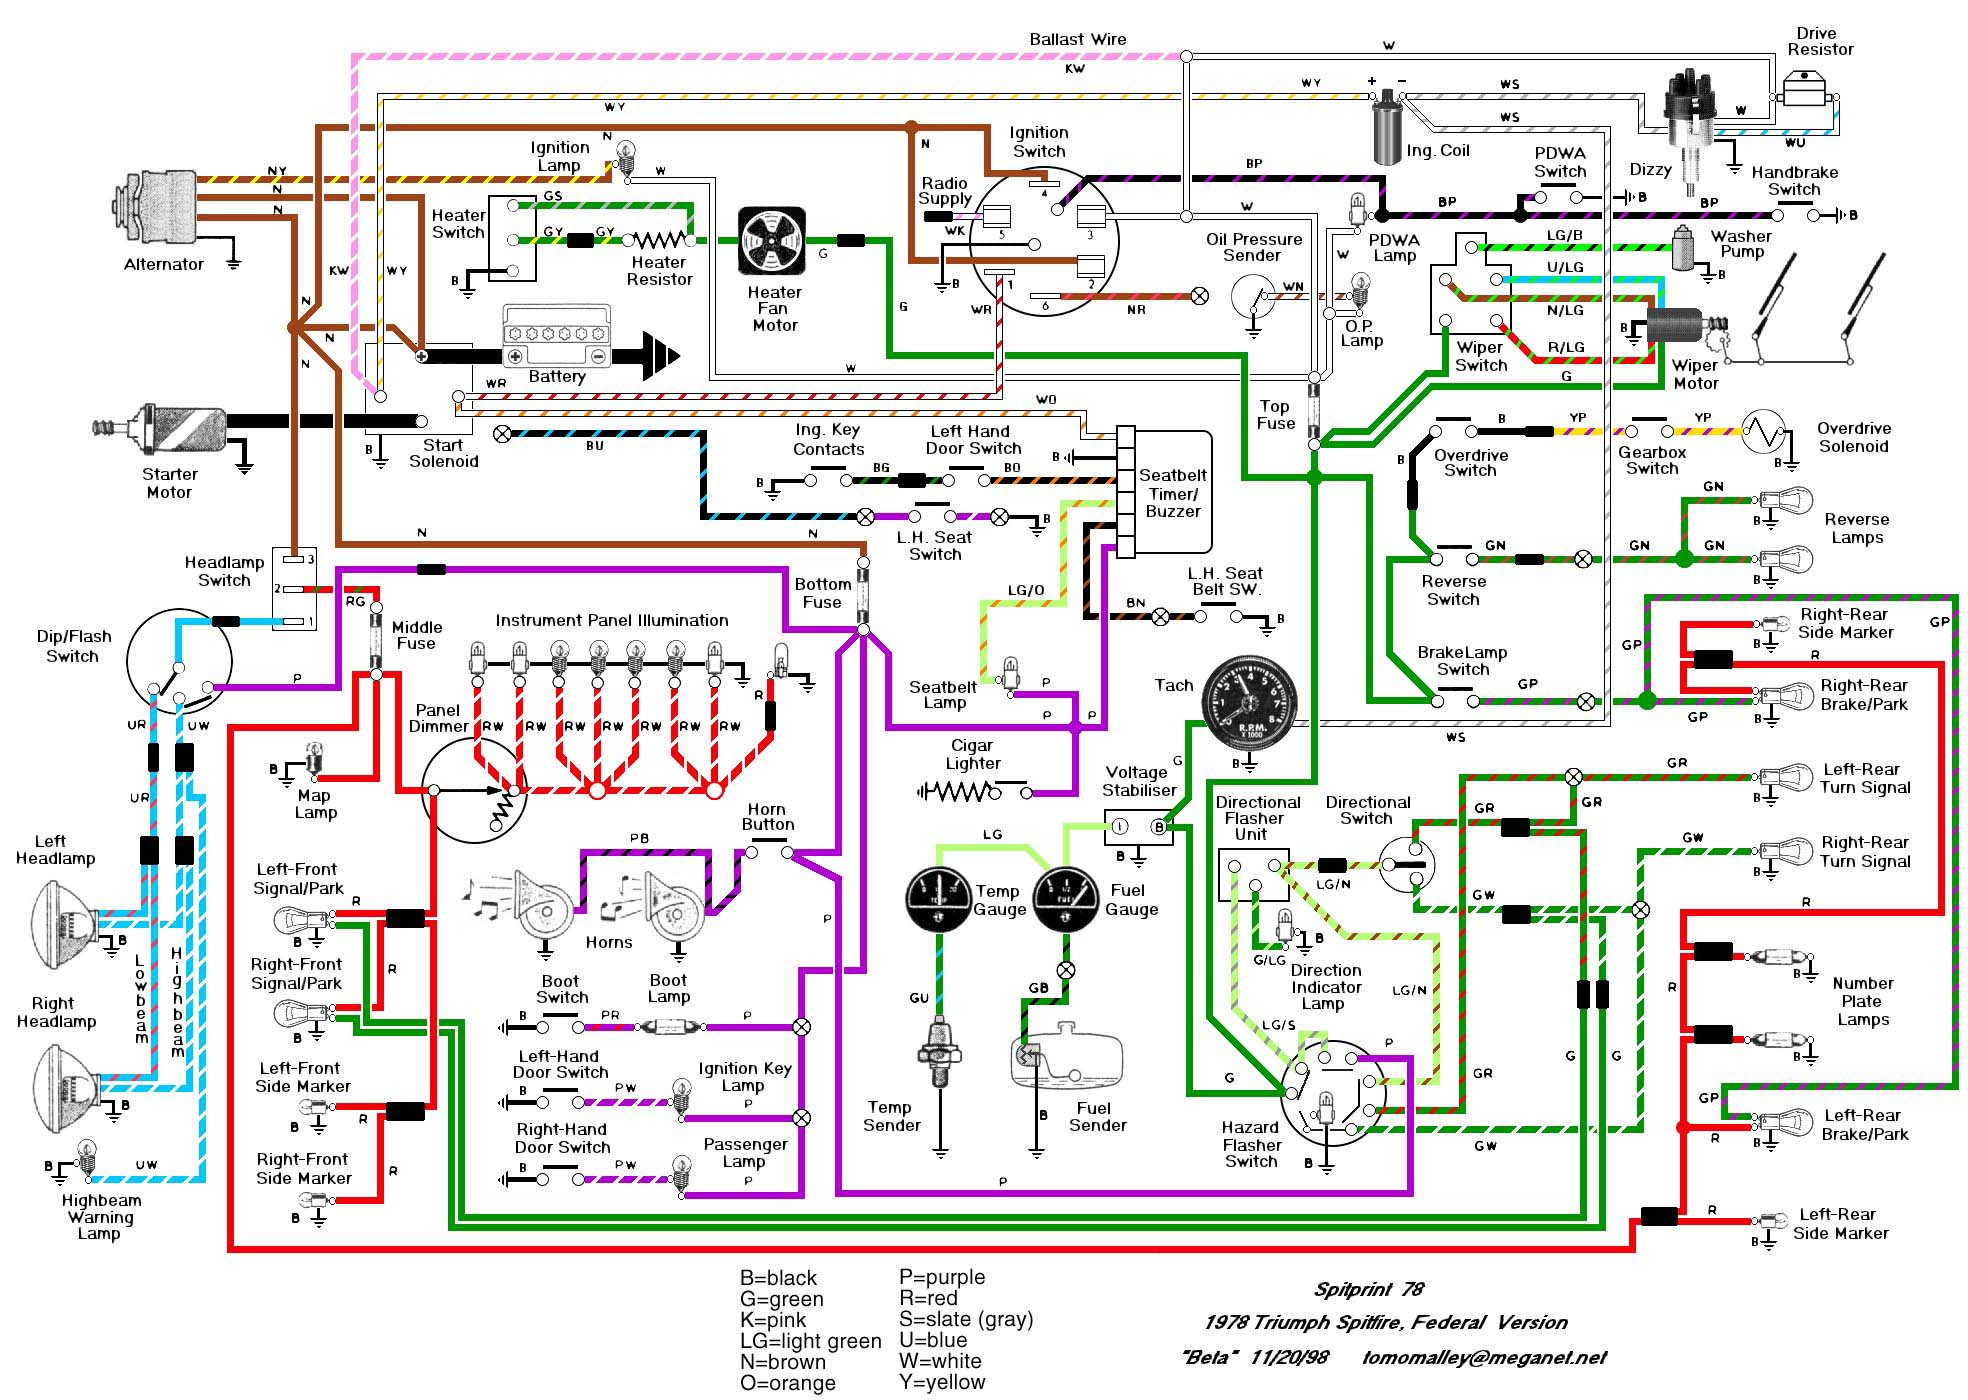 78diagram show wiring diagrams electrical wiring diagram software \u2022 wiring 2002 5.4 Wiring Harness Diagram at mifinder.co